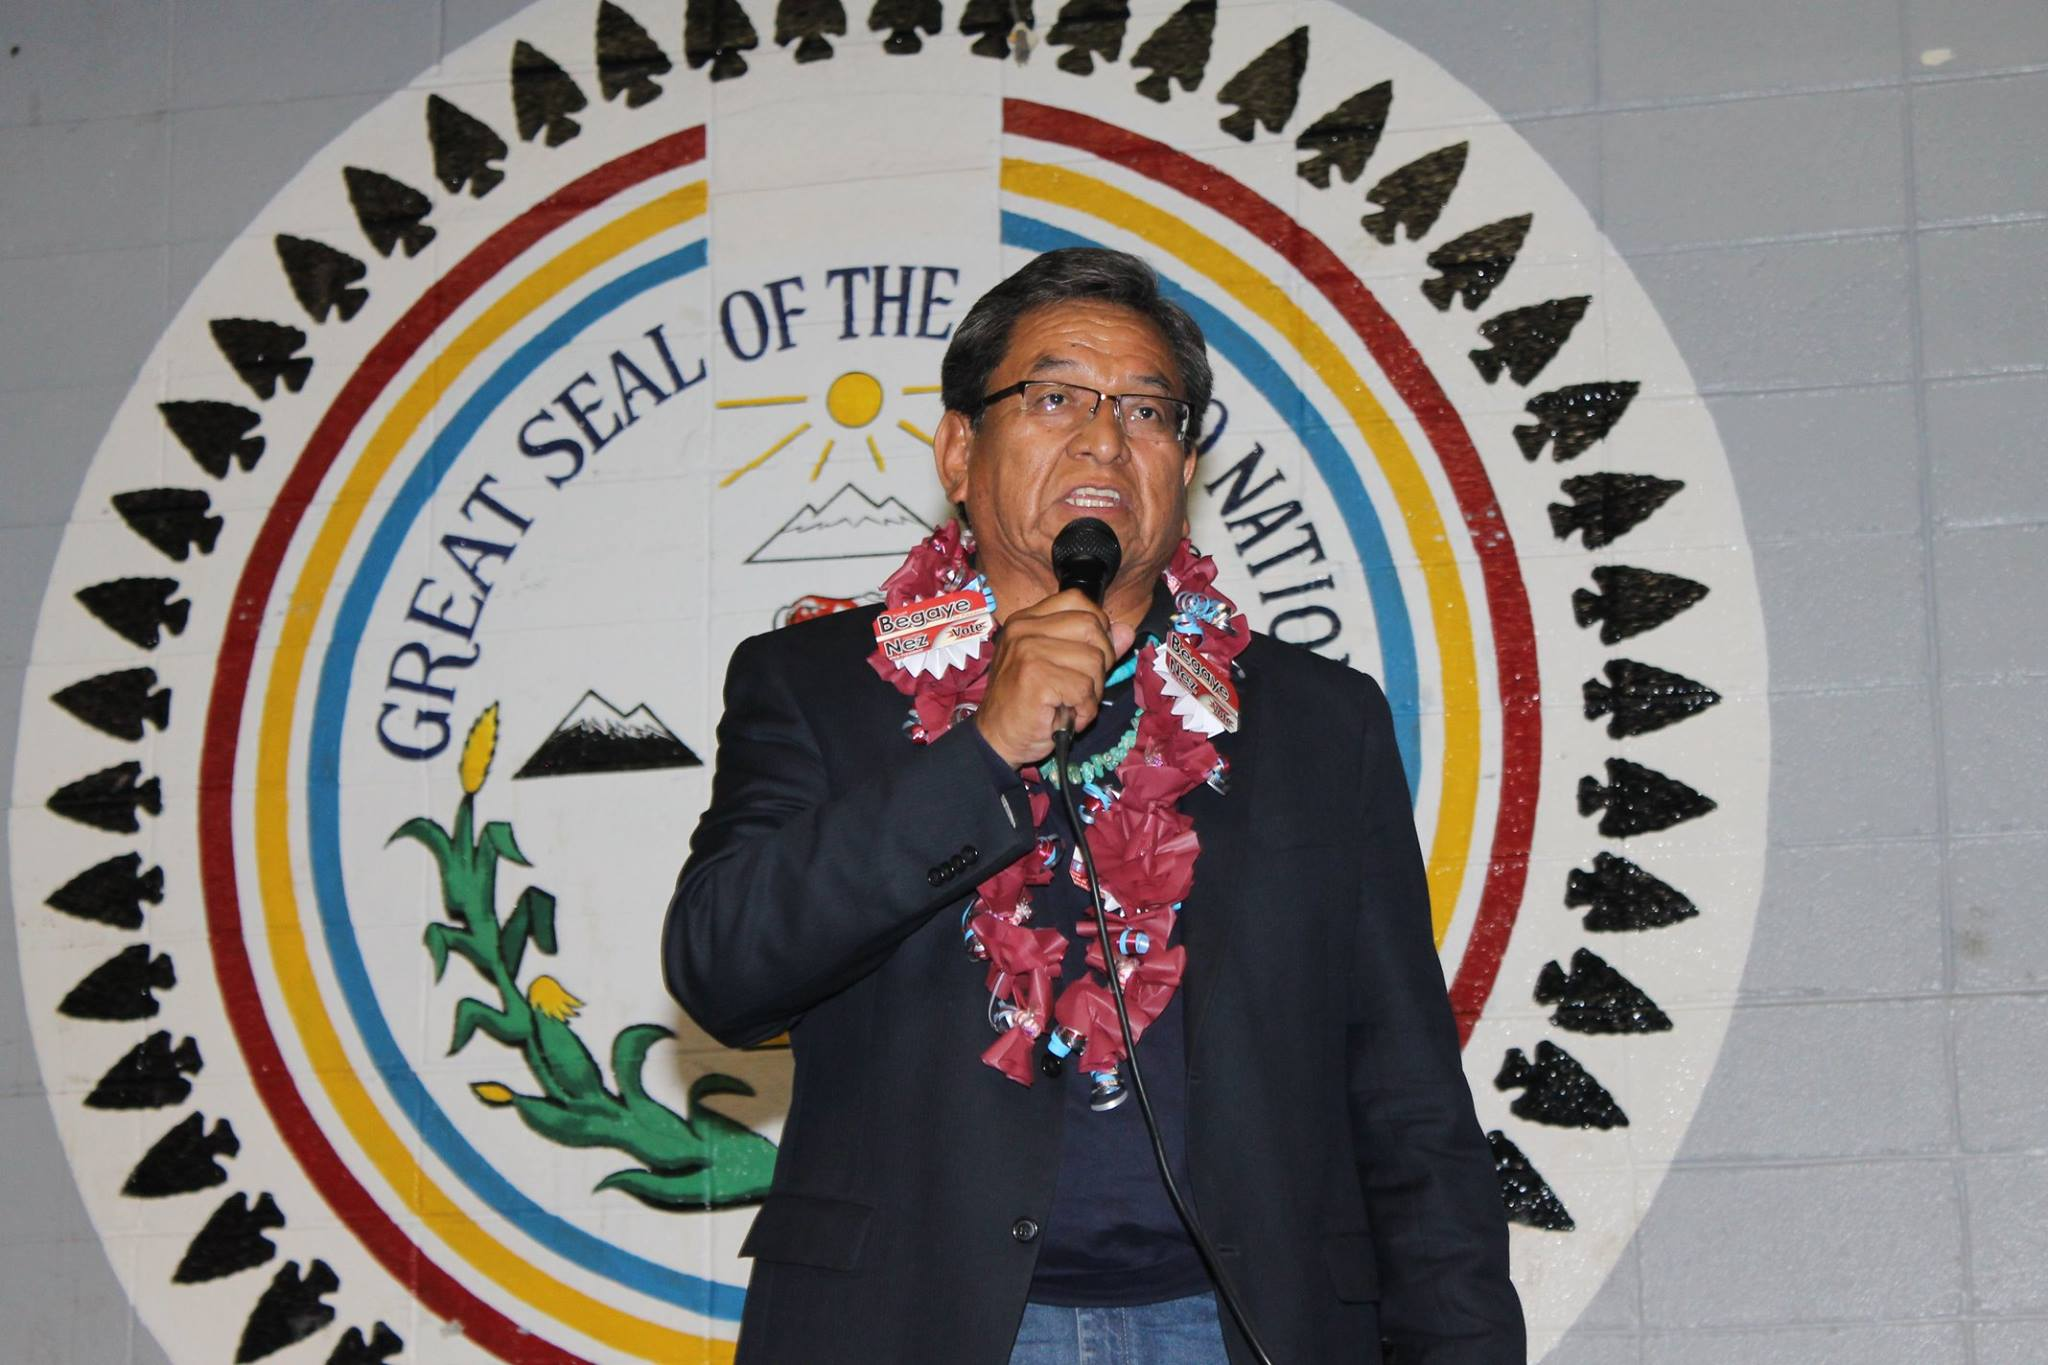 Incoming president of Navajo Nation prepares for inauguration